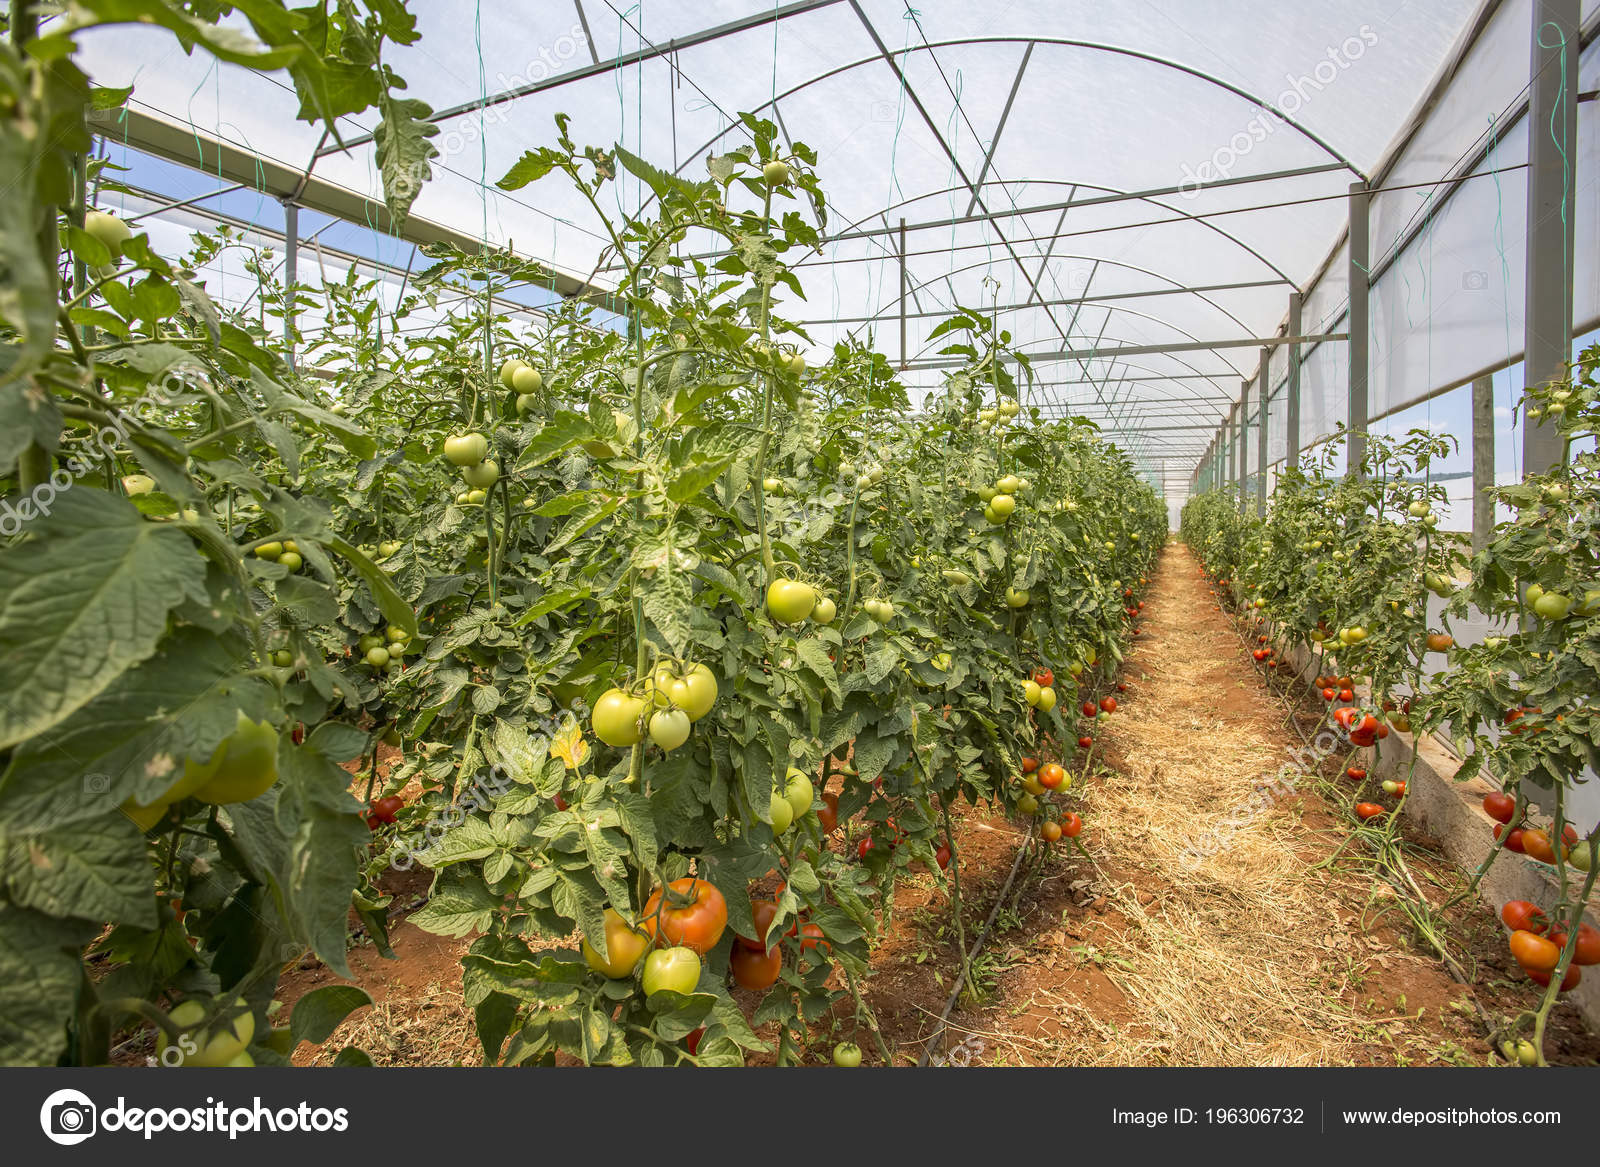 Tomatoes Field Greenhouse Agriculture — Stock Photo